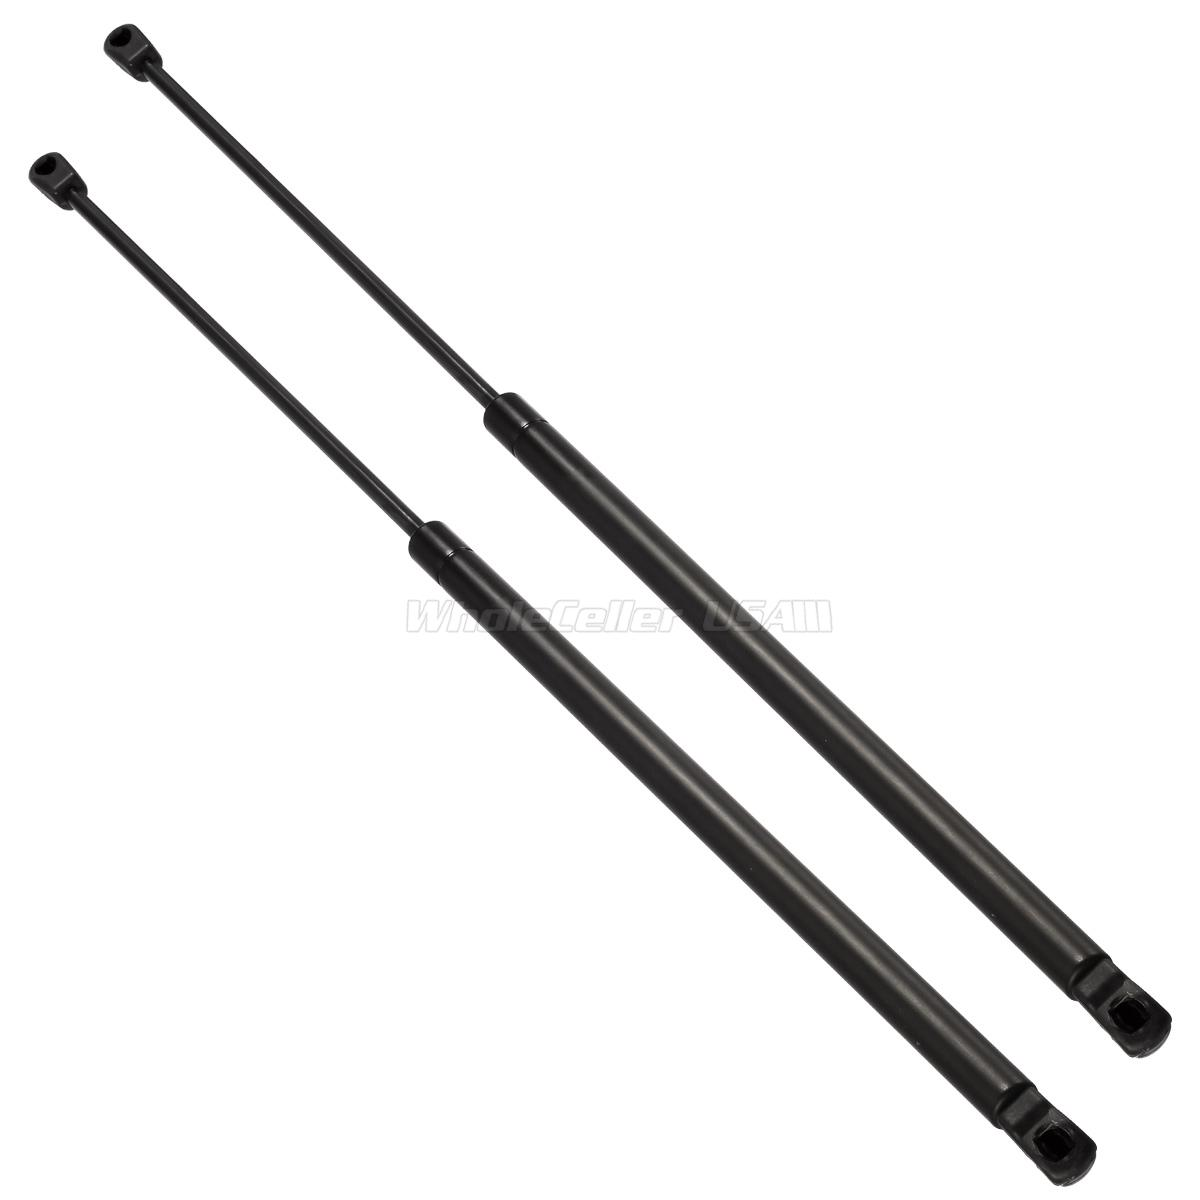 Qty2 Pm Front Hood Lift Support Shocks Struts For